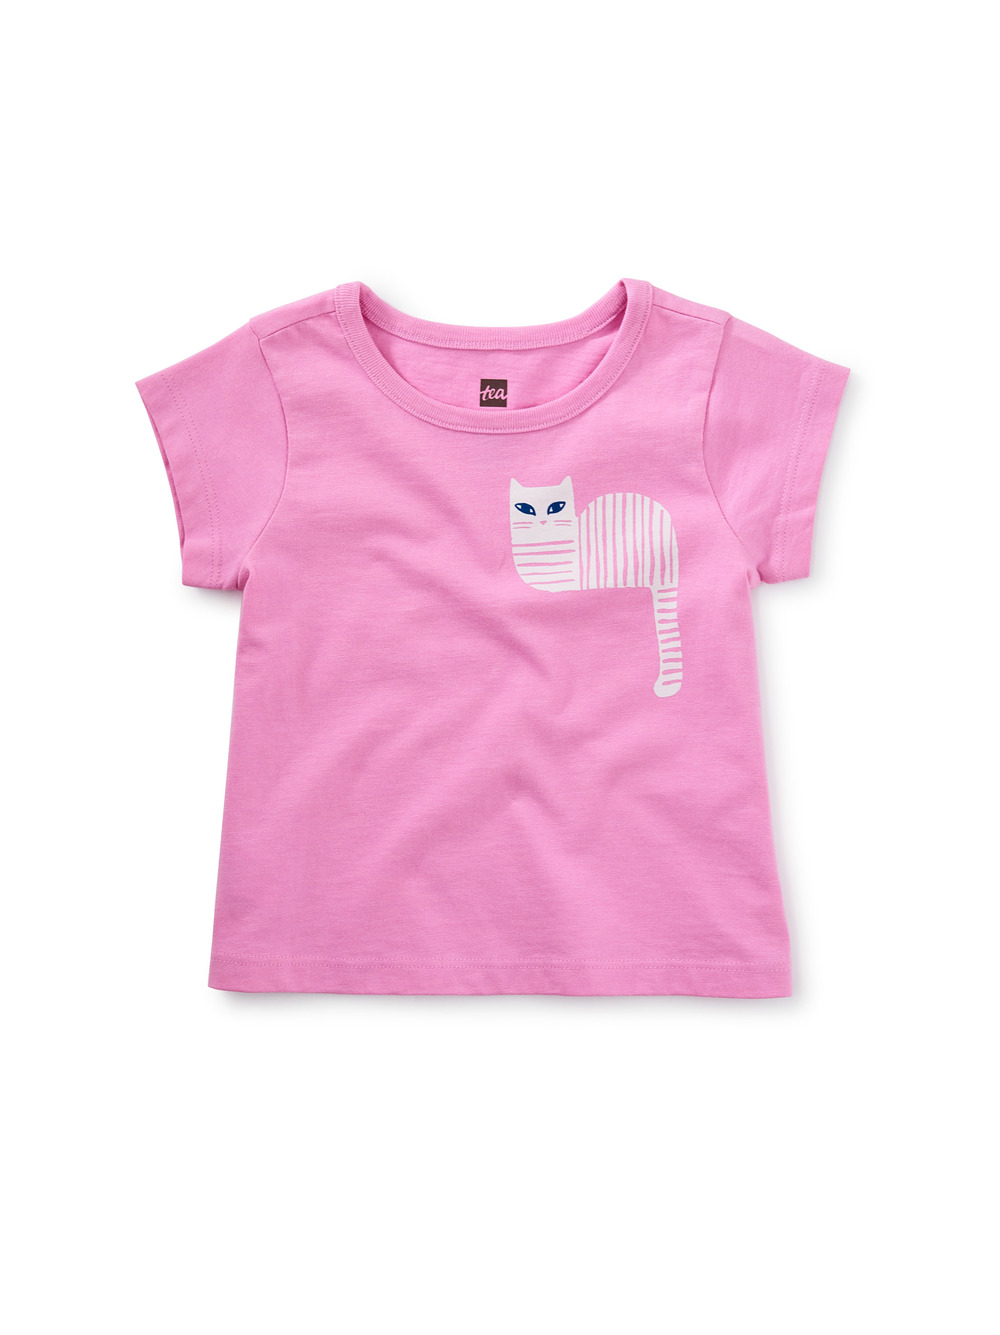 Cat & Mouse Baby Tee